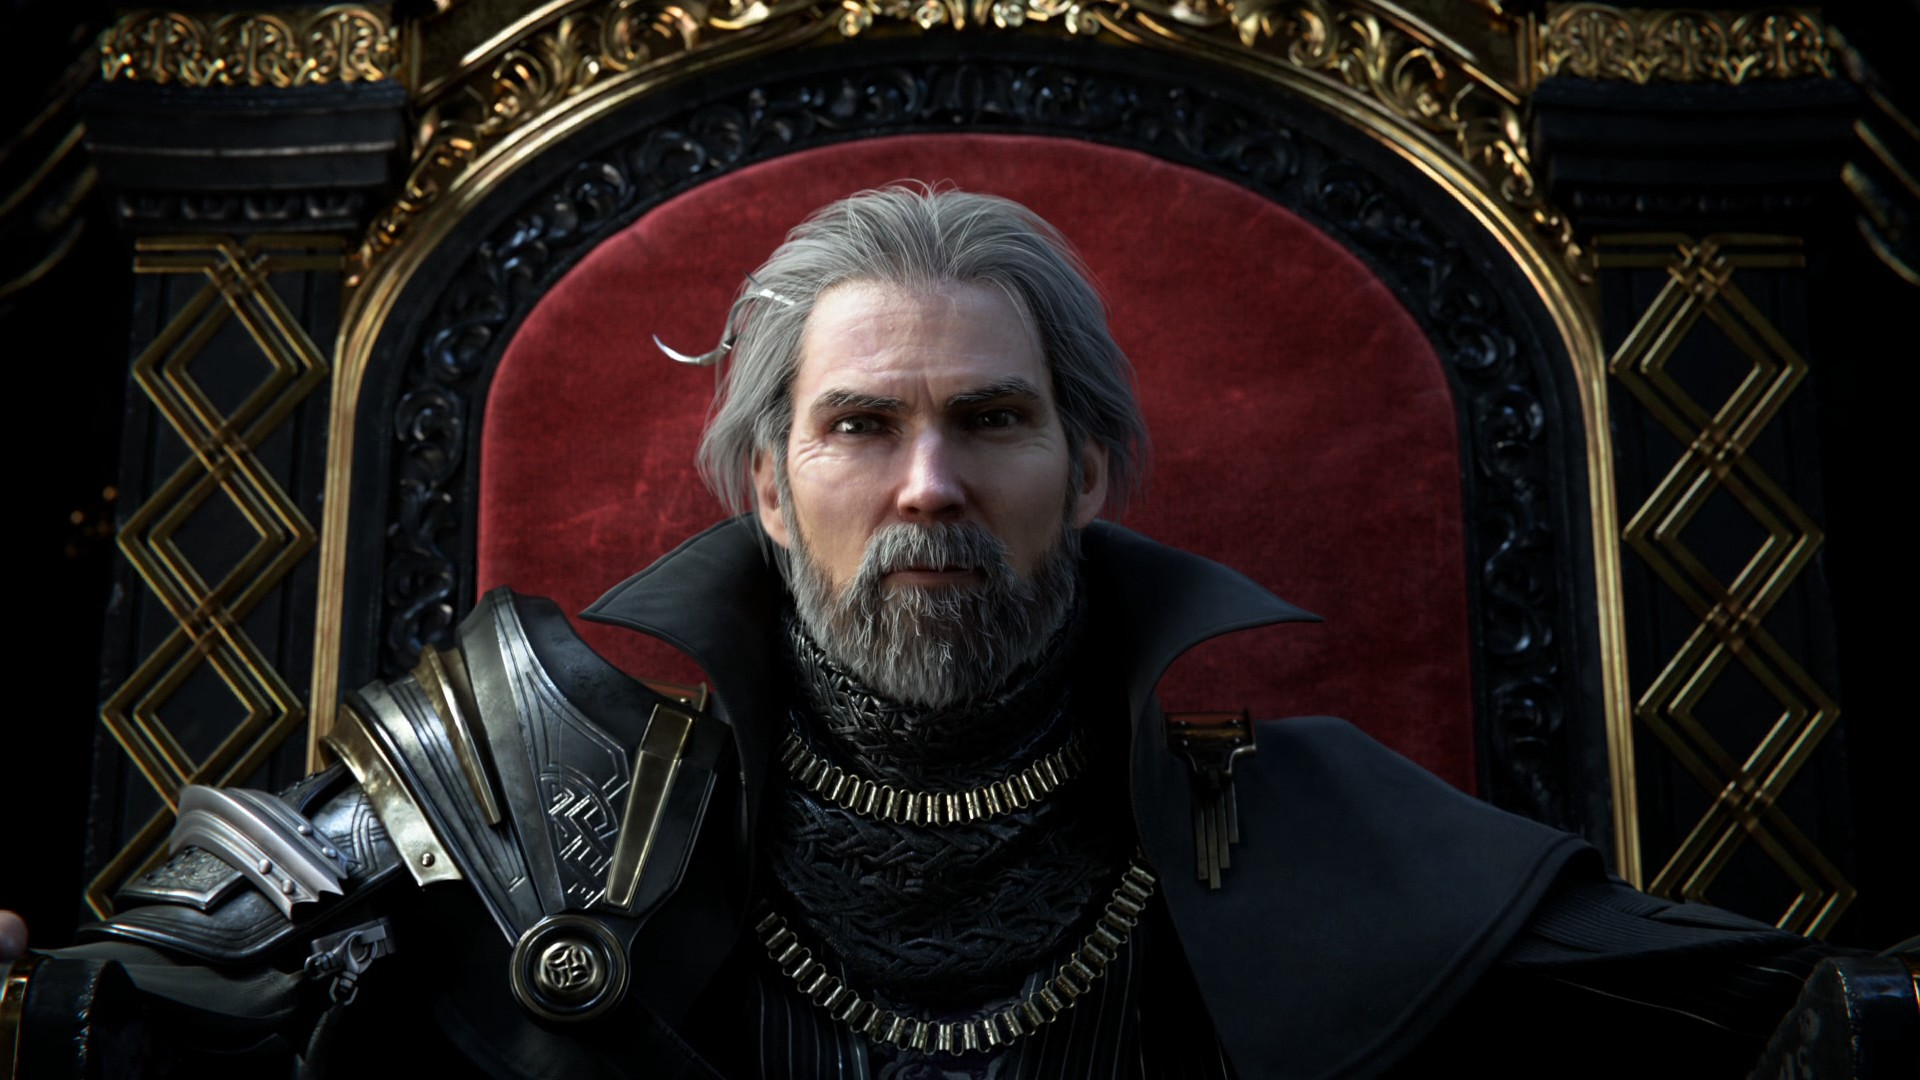 Final Fantasy XV king Regis